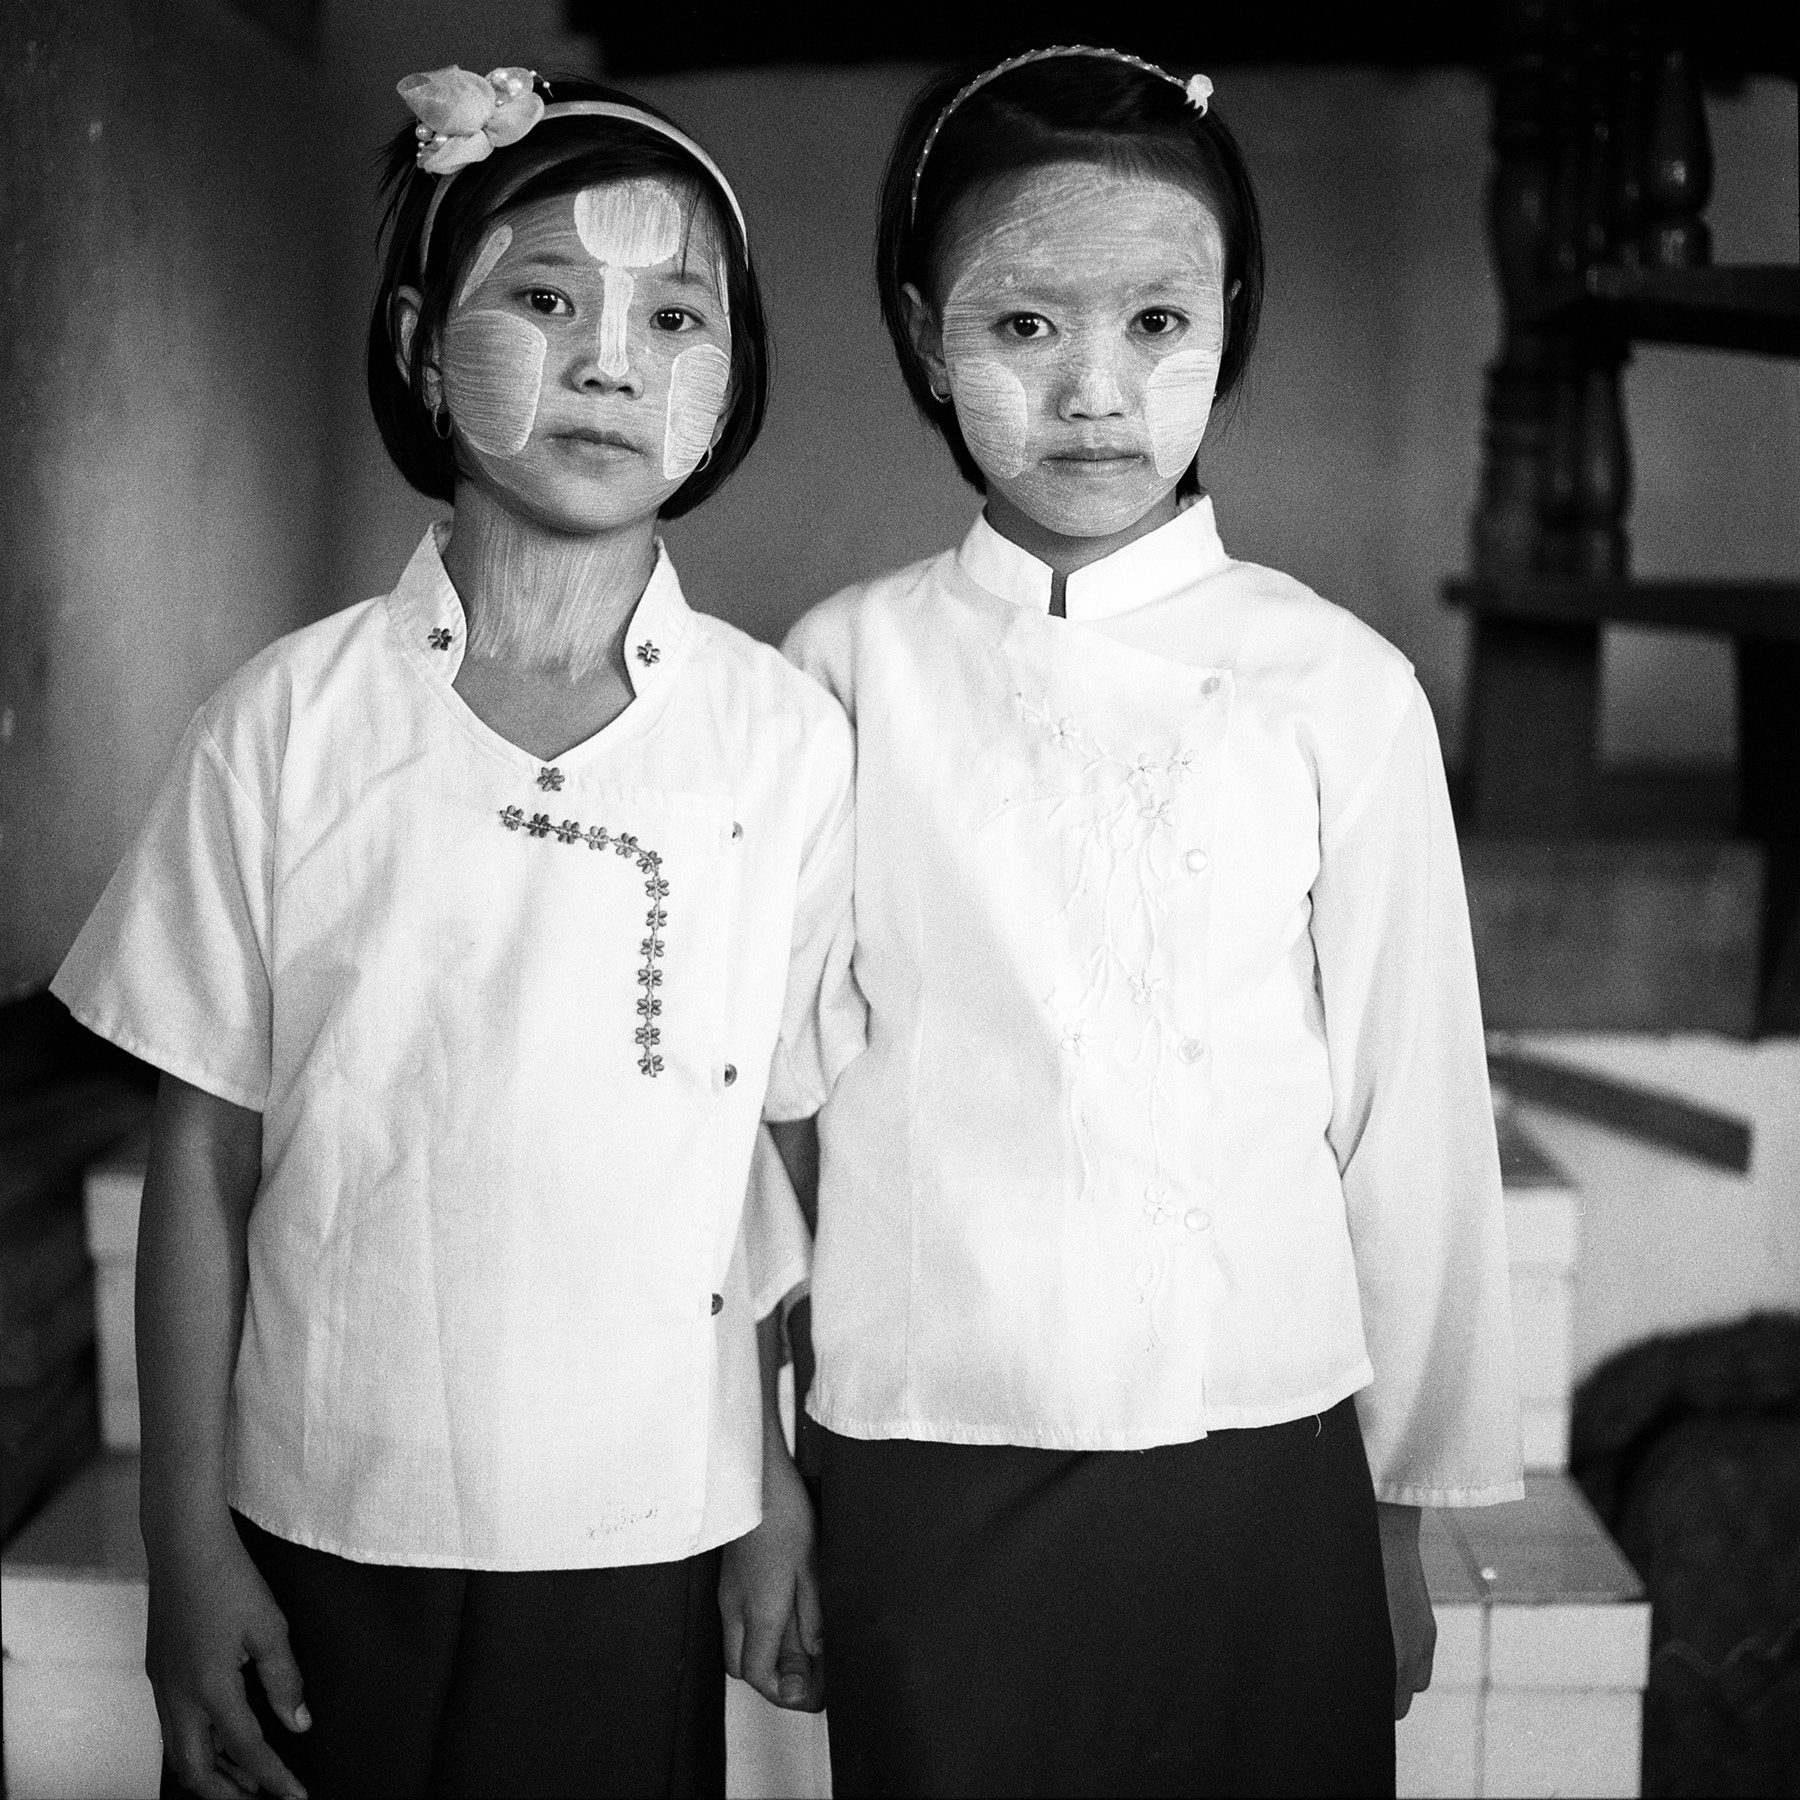 Photograph shan school students, unnamed village by  momofuku on 500px